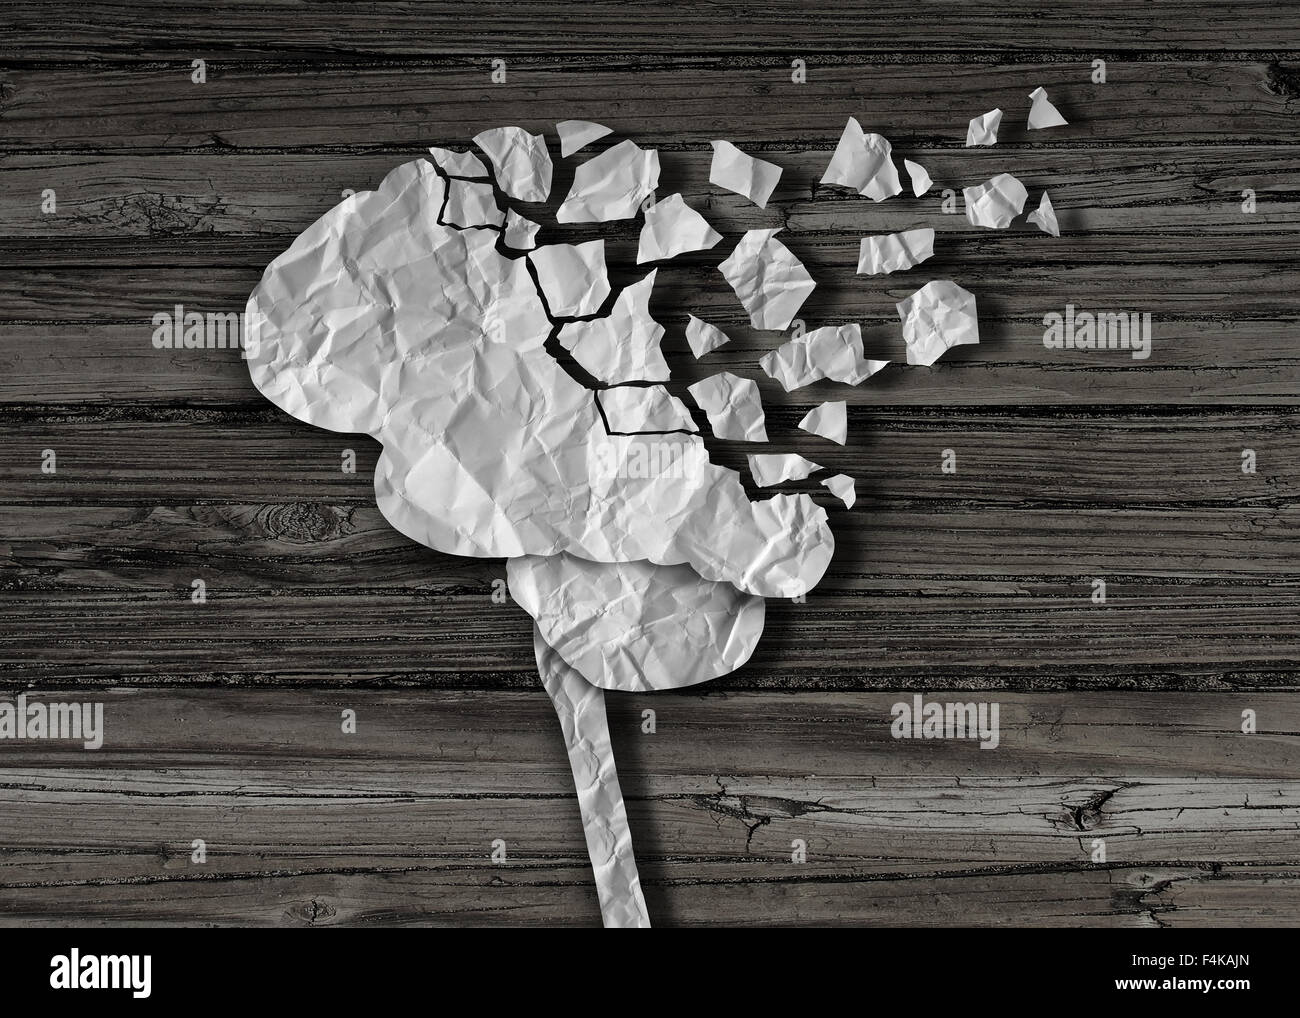 Traumatic Brain Injury Stock Photos & Traumatic Brain Injury